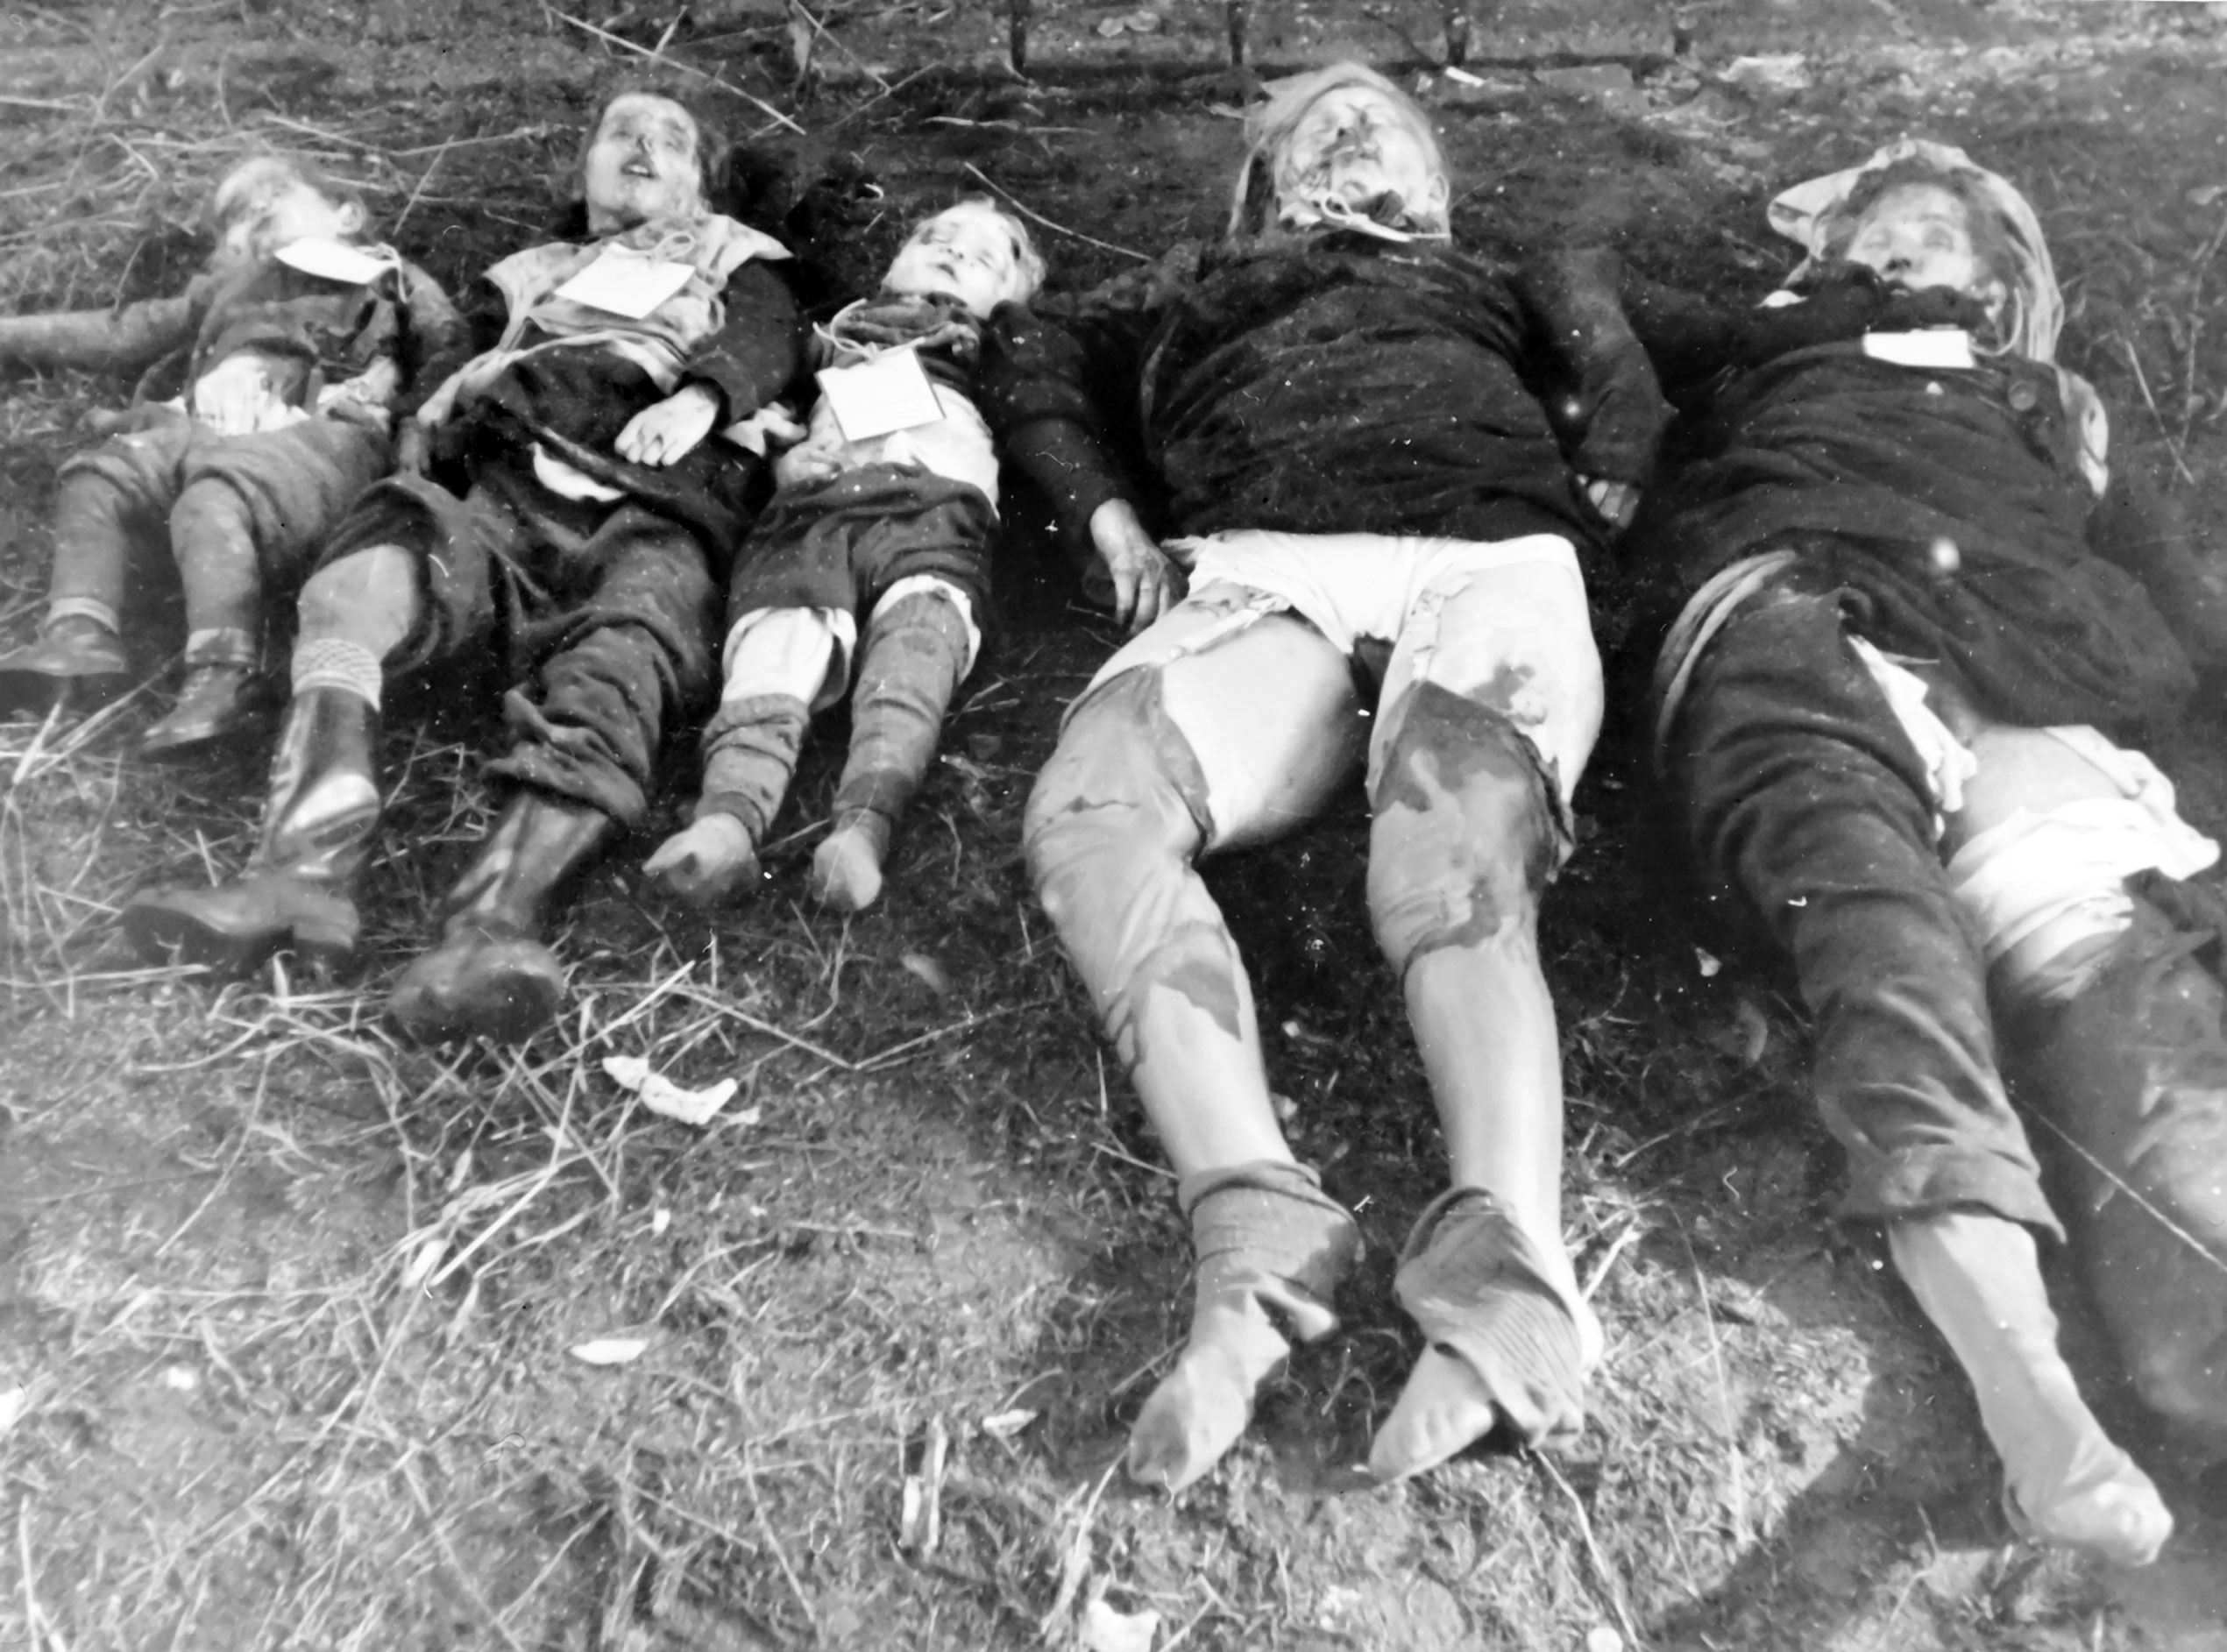 https://upload.wikimedia.org/wikipedia/commons/c/c2/Germans_killed_by_Soviet_army.jpg